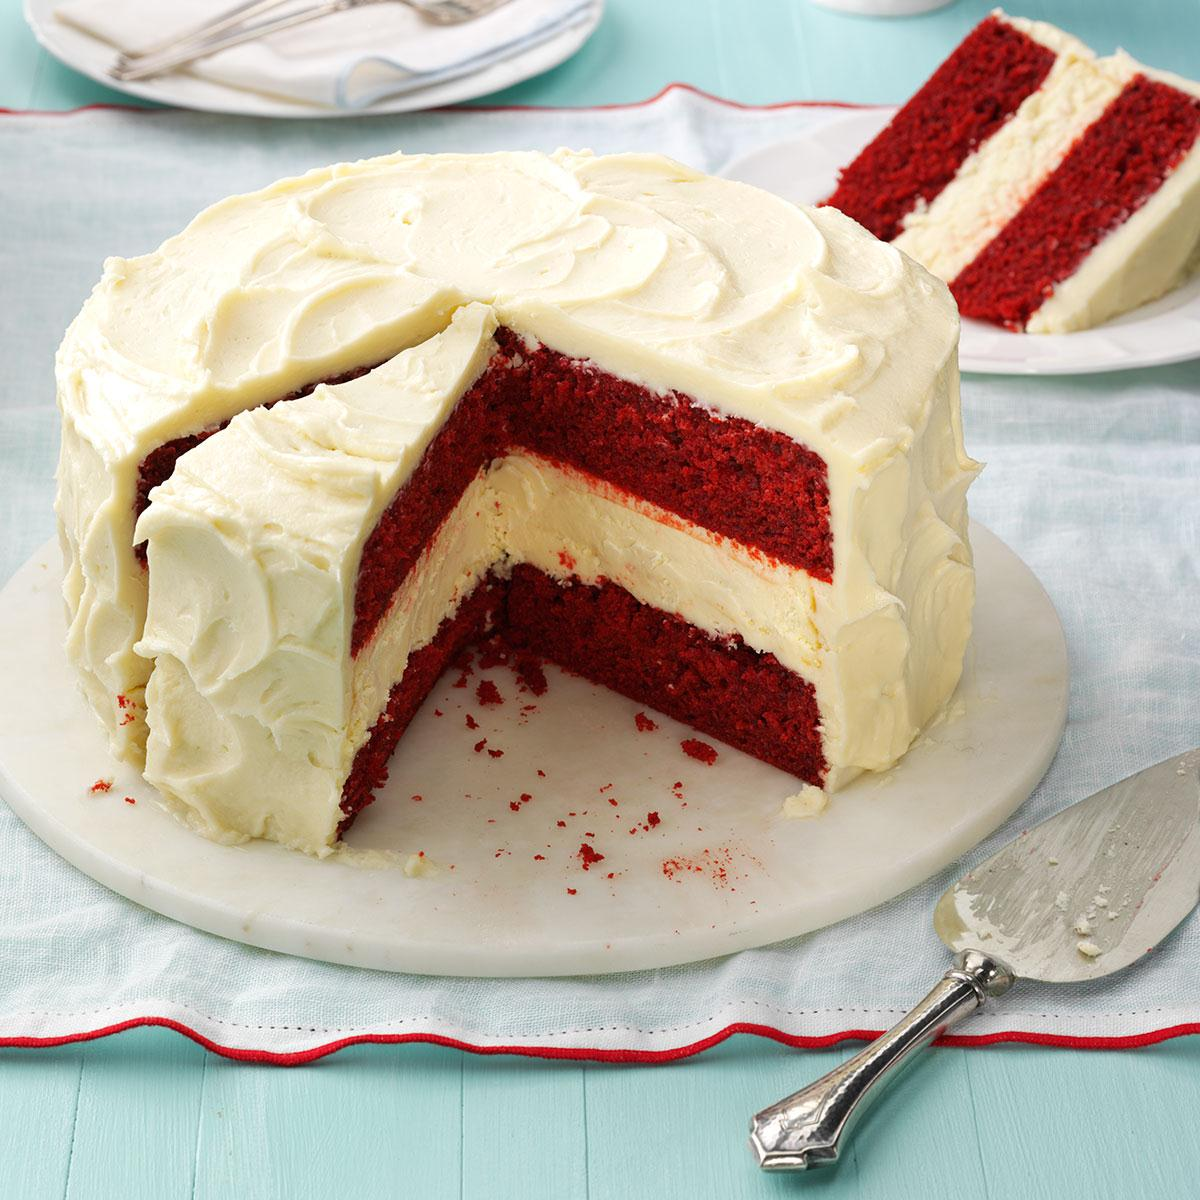 Strange Cheesecake Layered Red Velvet Cake Recipe Taste Of Home Funny Birthday Cards Online Alyptdamsfinfo